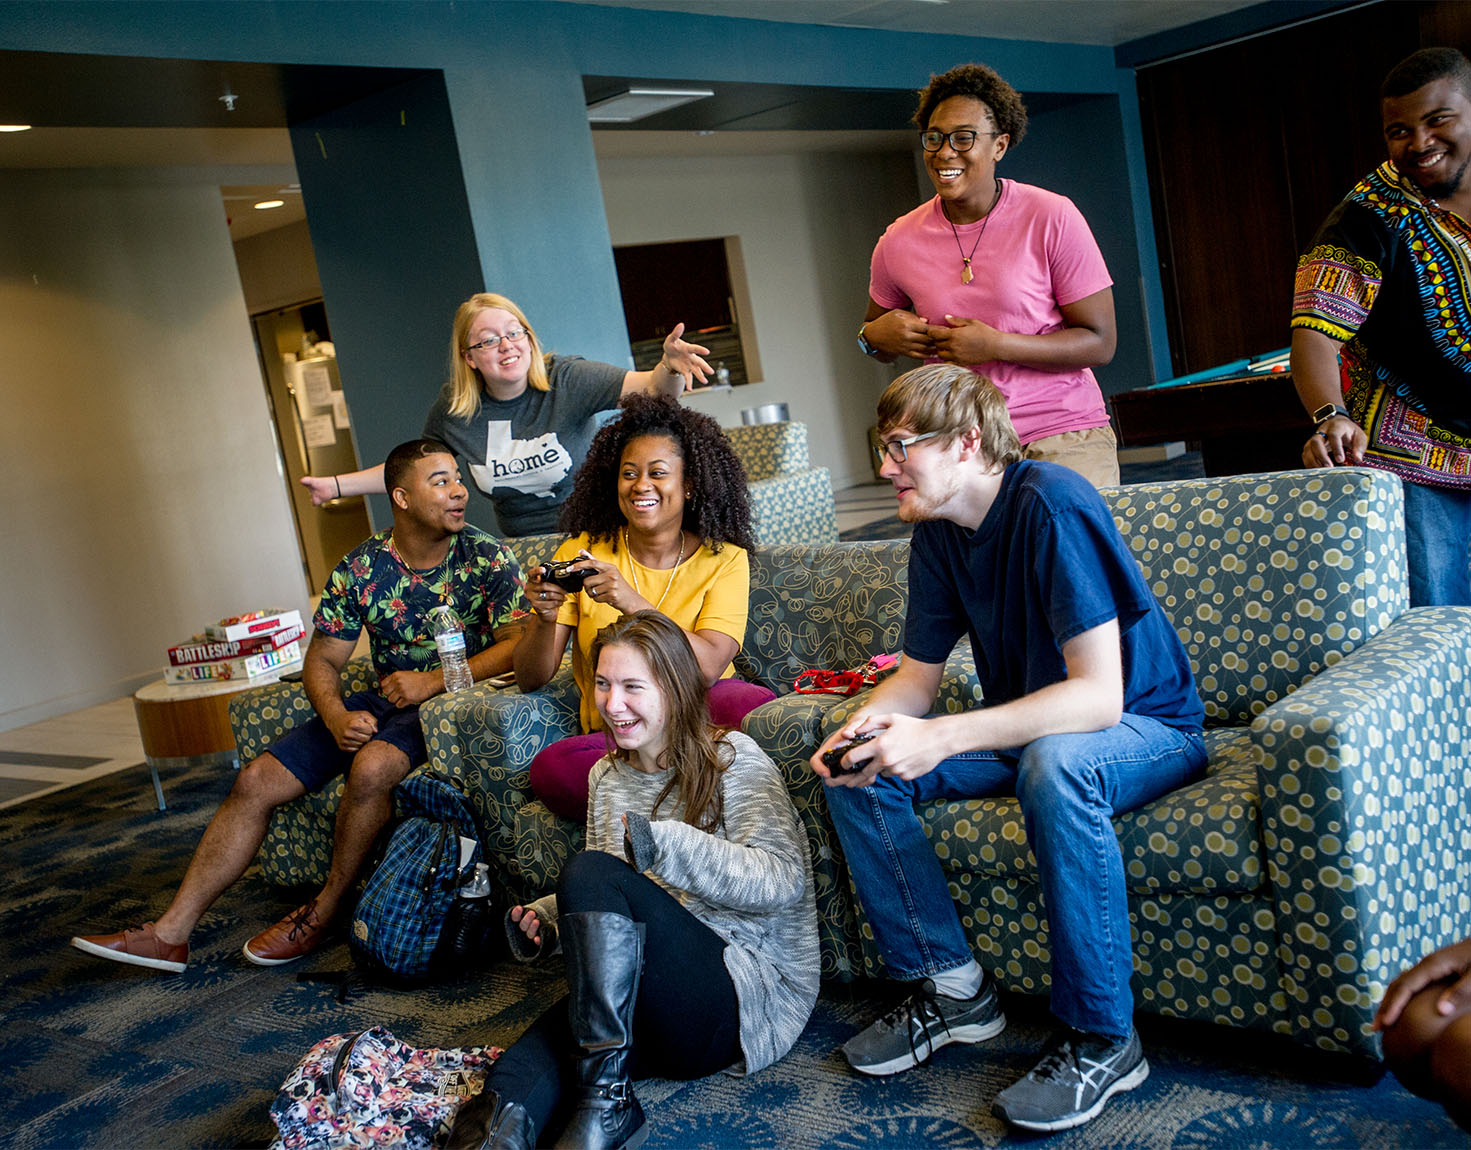 A group of student playing videogames and laughing.